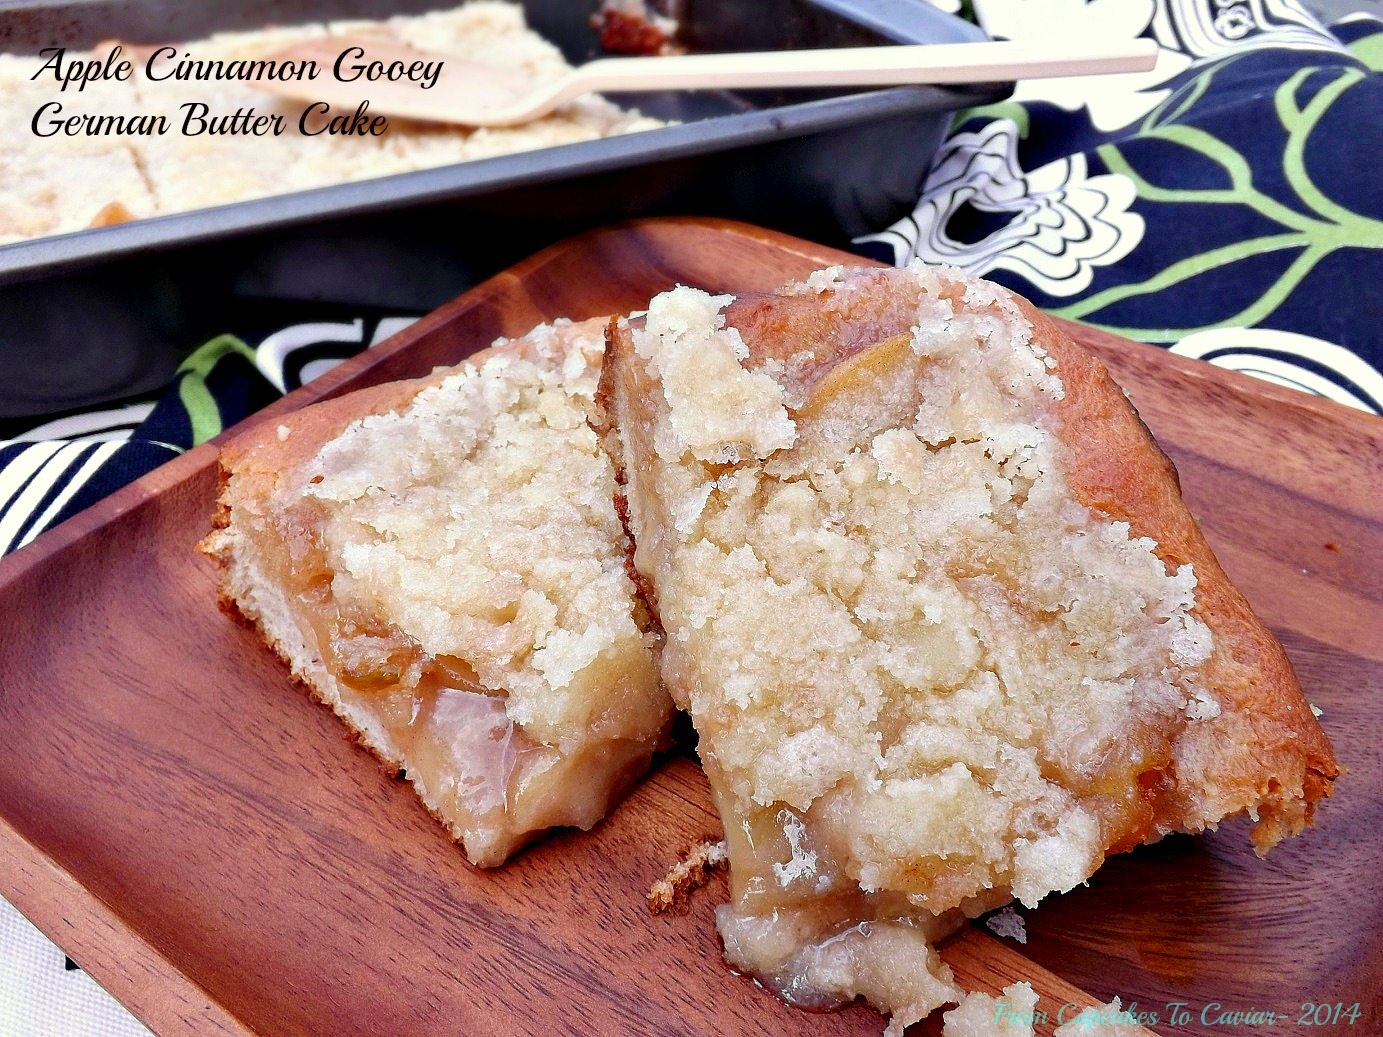 Cinnamon Apple Gooey German Butter Cake